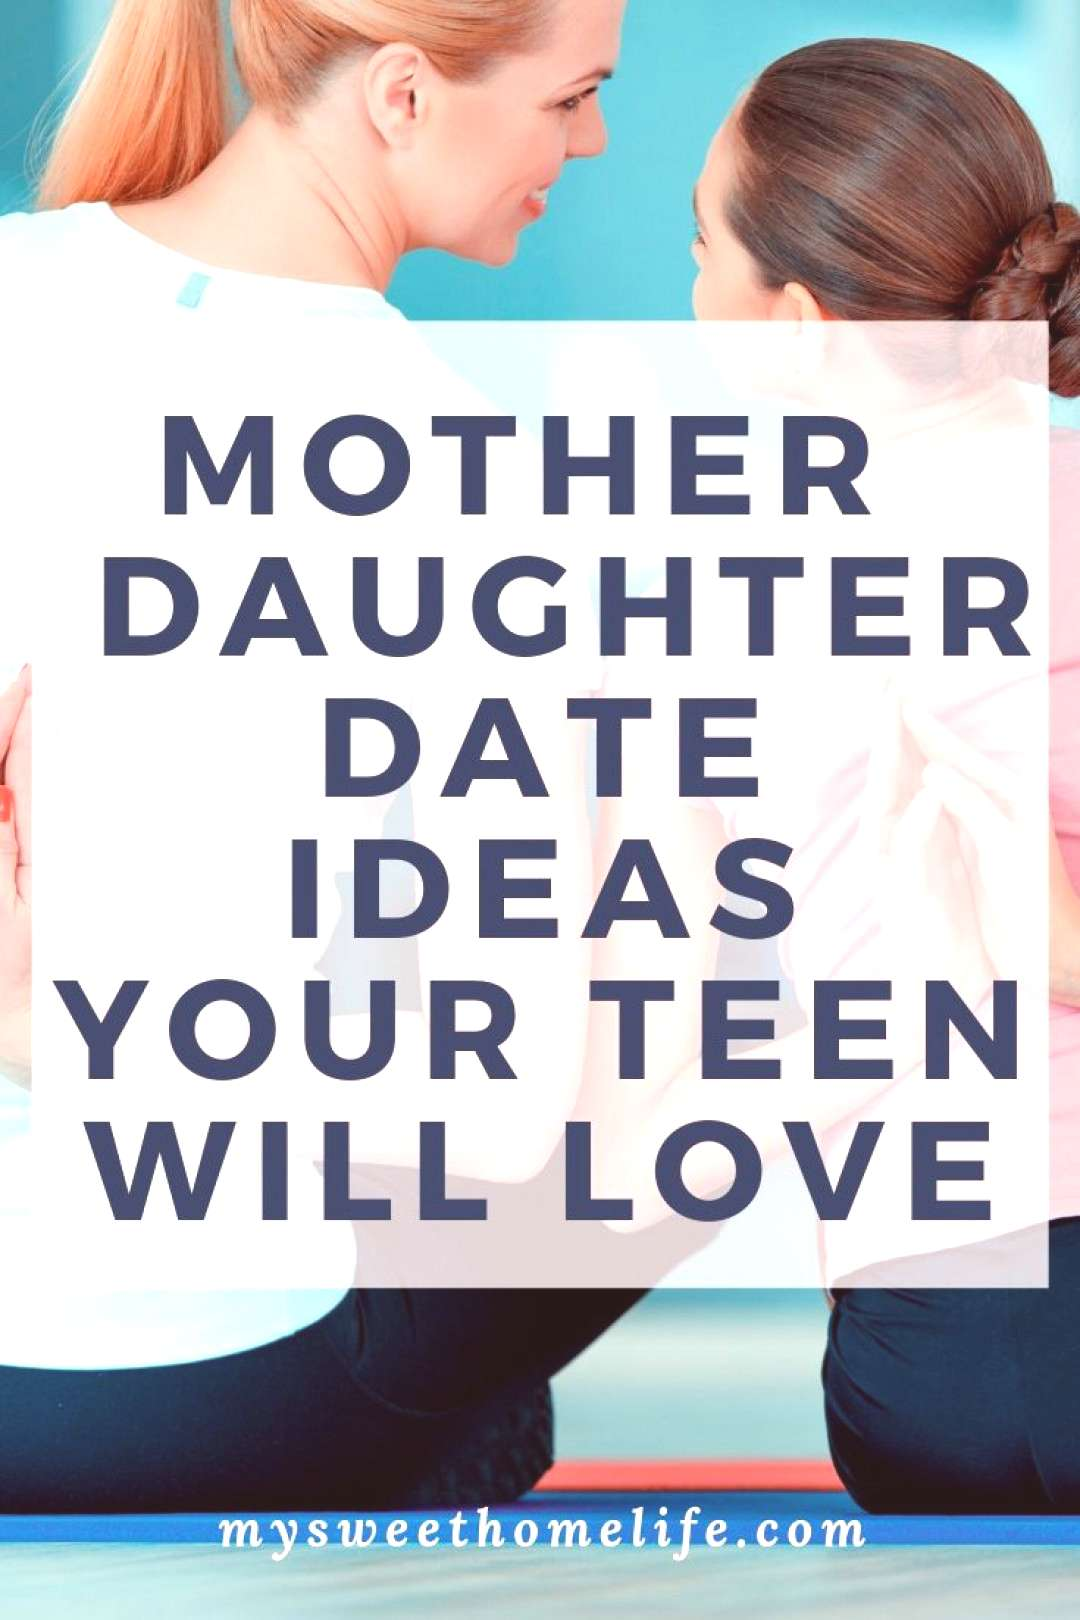 Looking for some fun ideas to do with your teen daughter for a mother daughter date or mother daugh